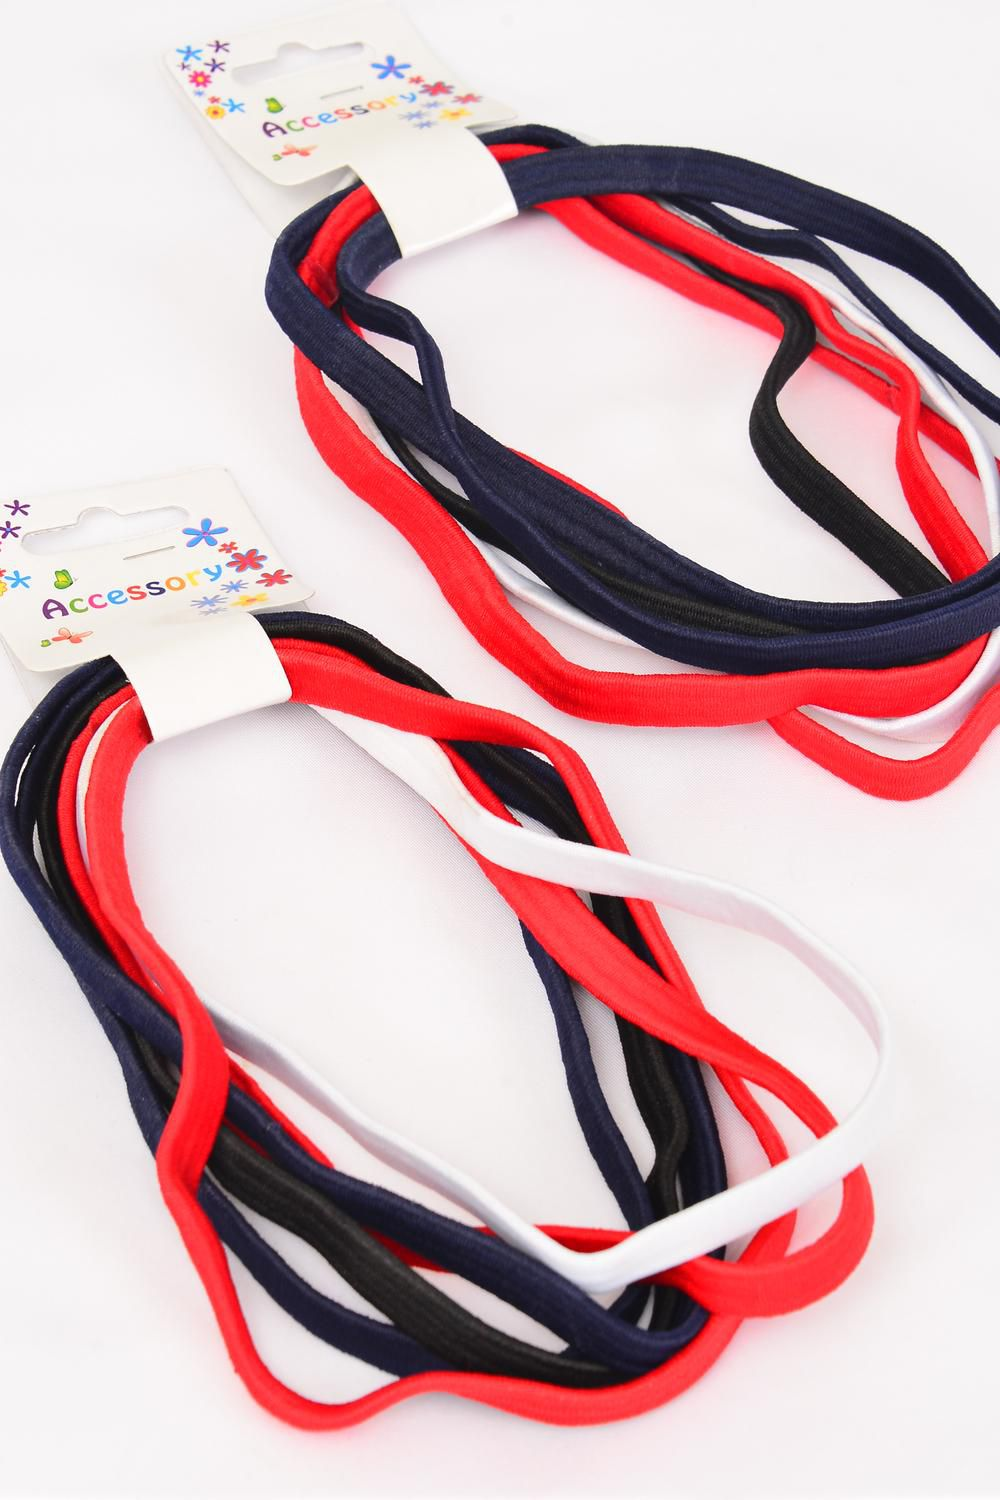 "Elastic Headband Wide Red White Black Navy mix 6pcs per Card/DZ **Red & White & Black & Navy Mix**  NO METAL, Size-15""x 3/8"" Wide,Pr Color Mix,Hang Tag & UPC Code,6 pcs per Card,12 Card=Dozen"